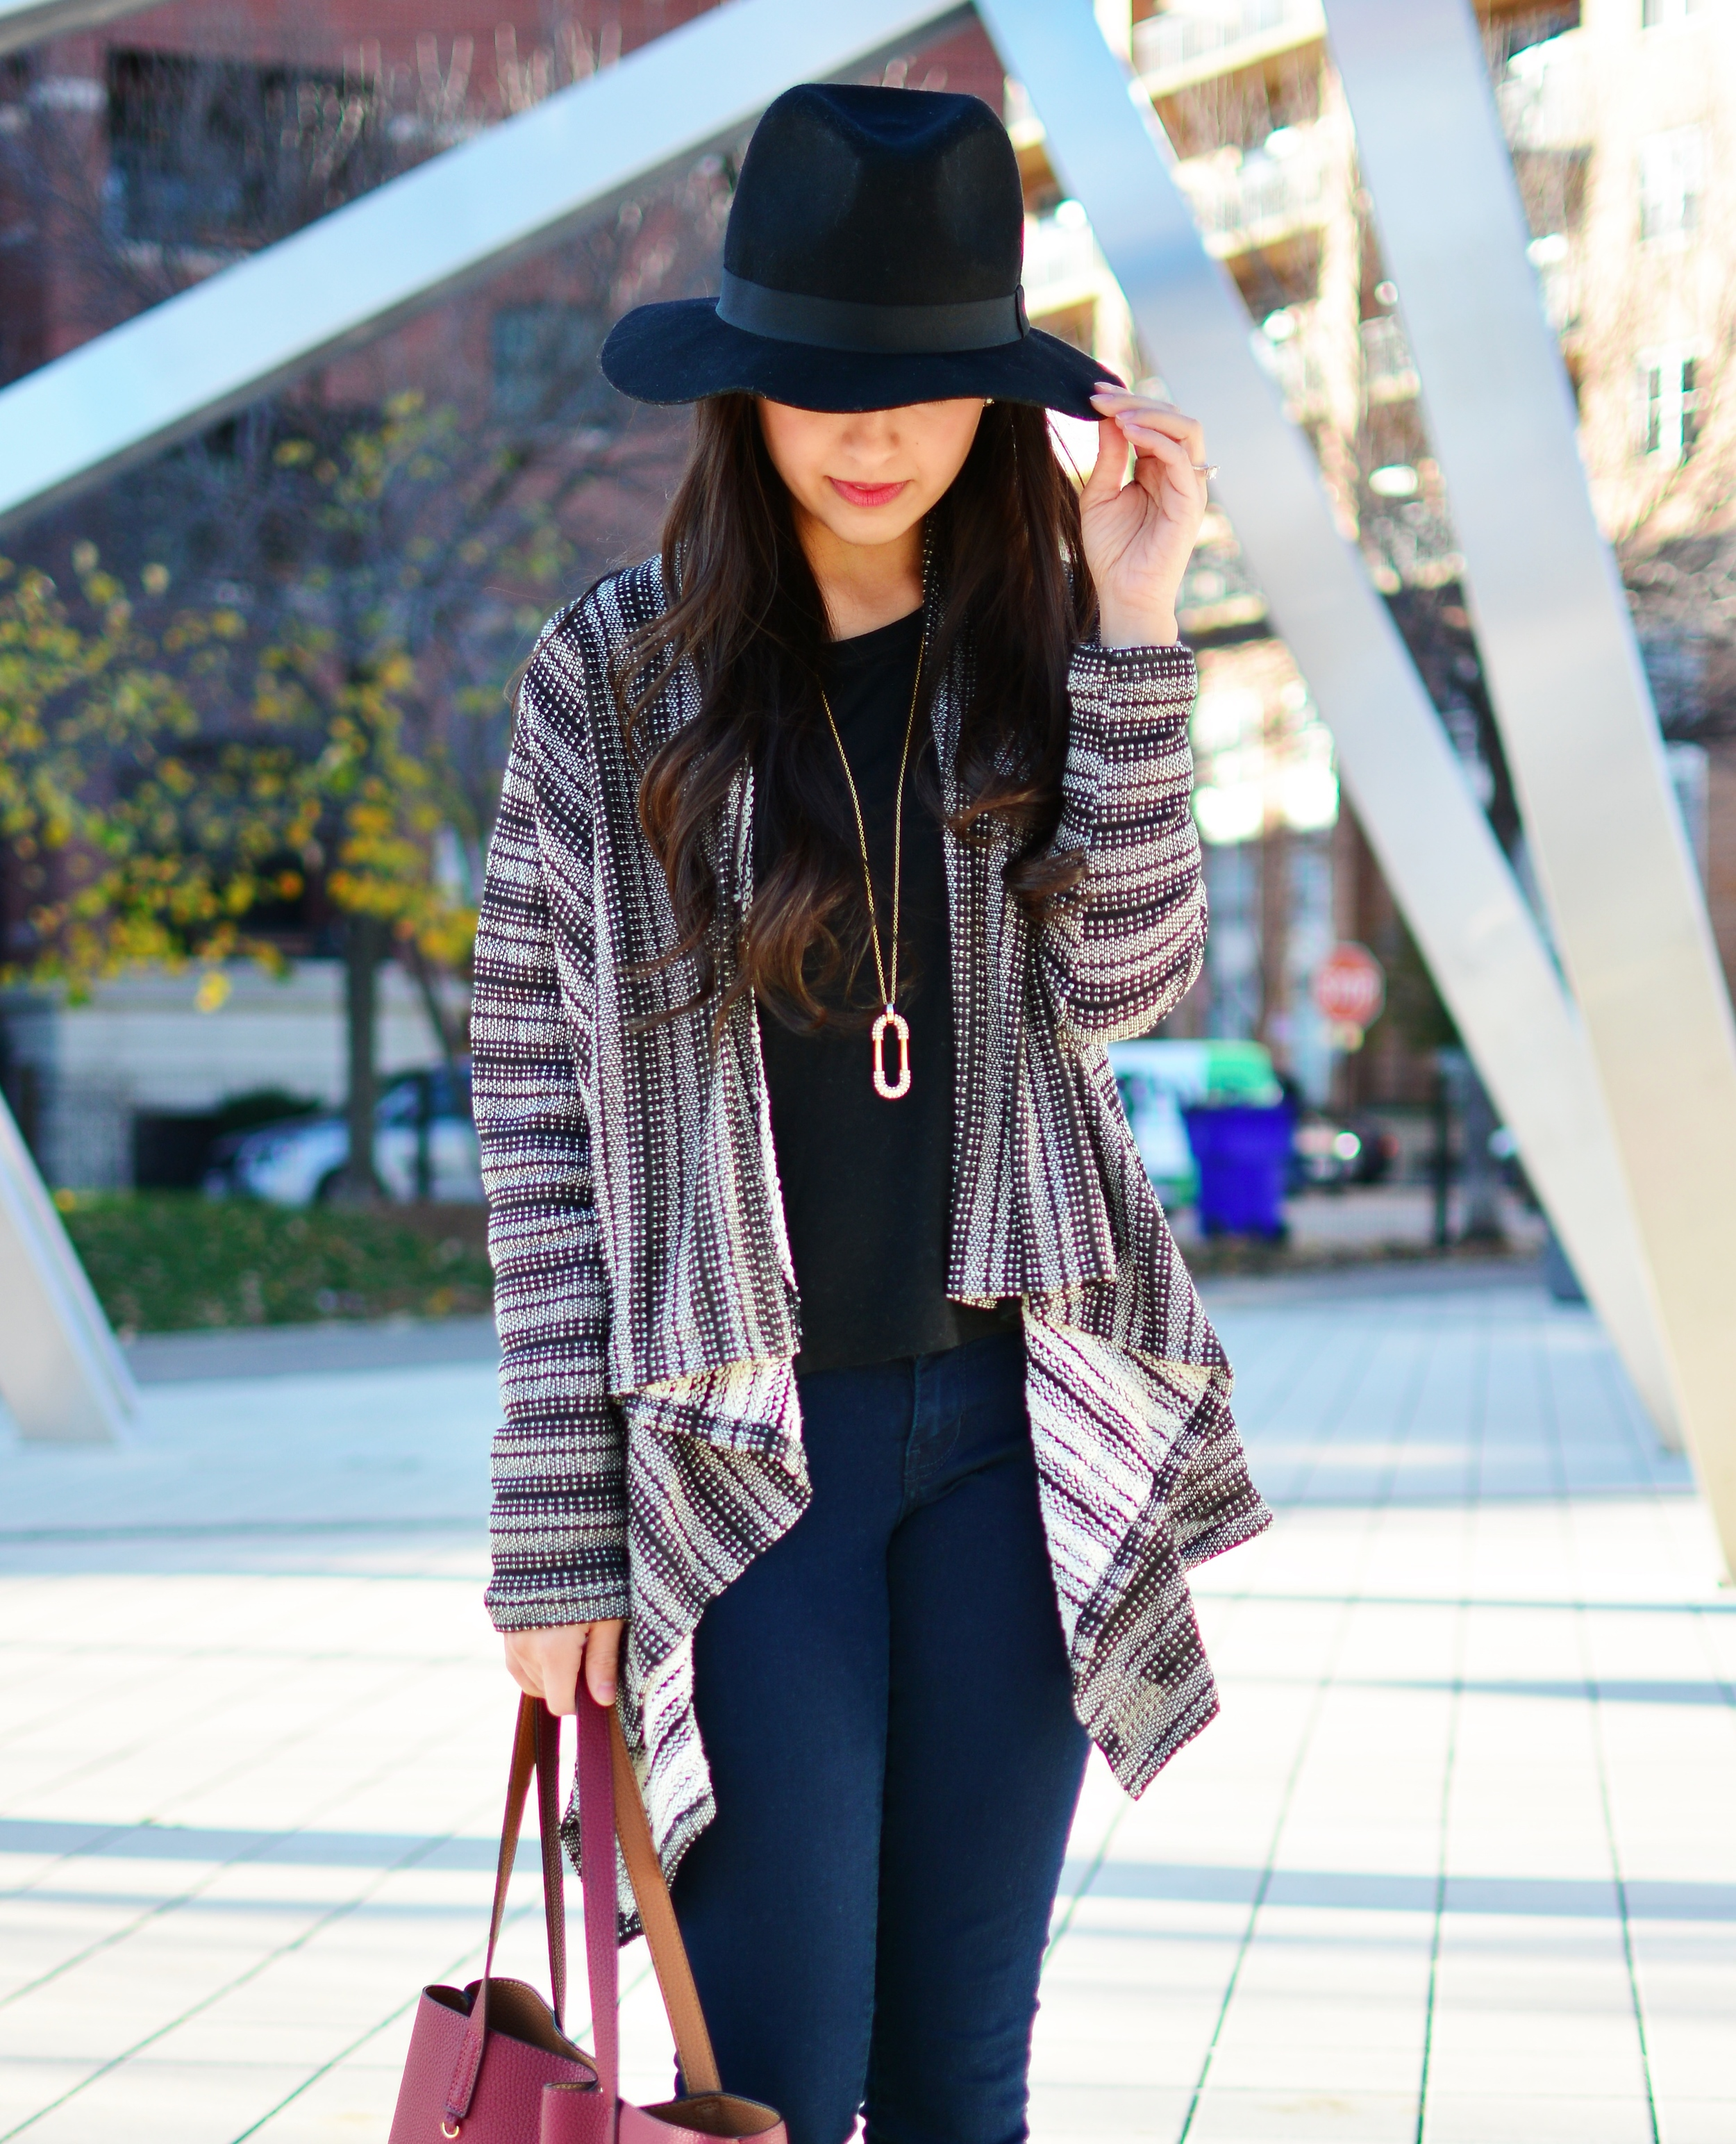 Fall fashion, stripe cardigan, blanket sweater, neutrals, all black outfit, burgundy, black felt fedora, suede booties, Chicago Blogger, indian fashion blogger, fall style, sweater weather